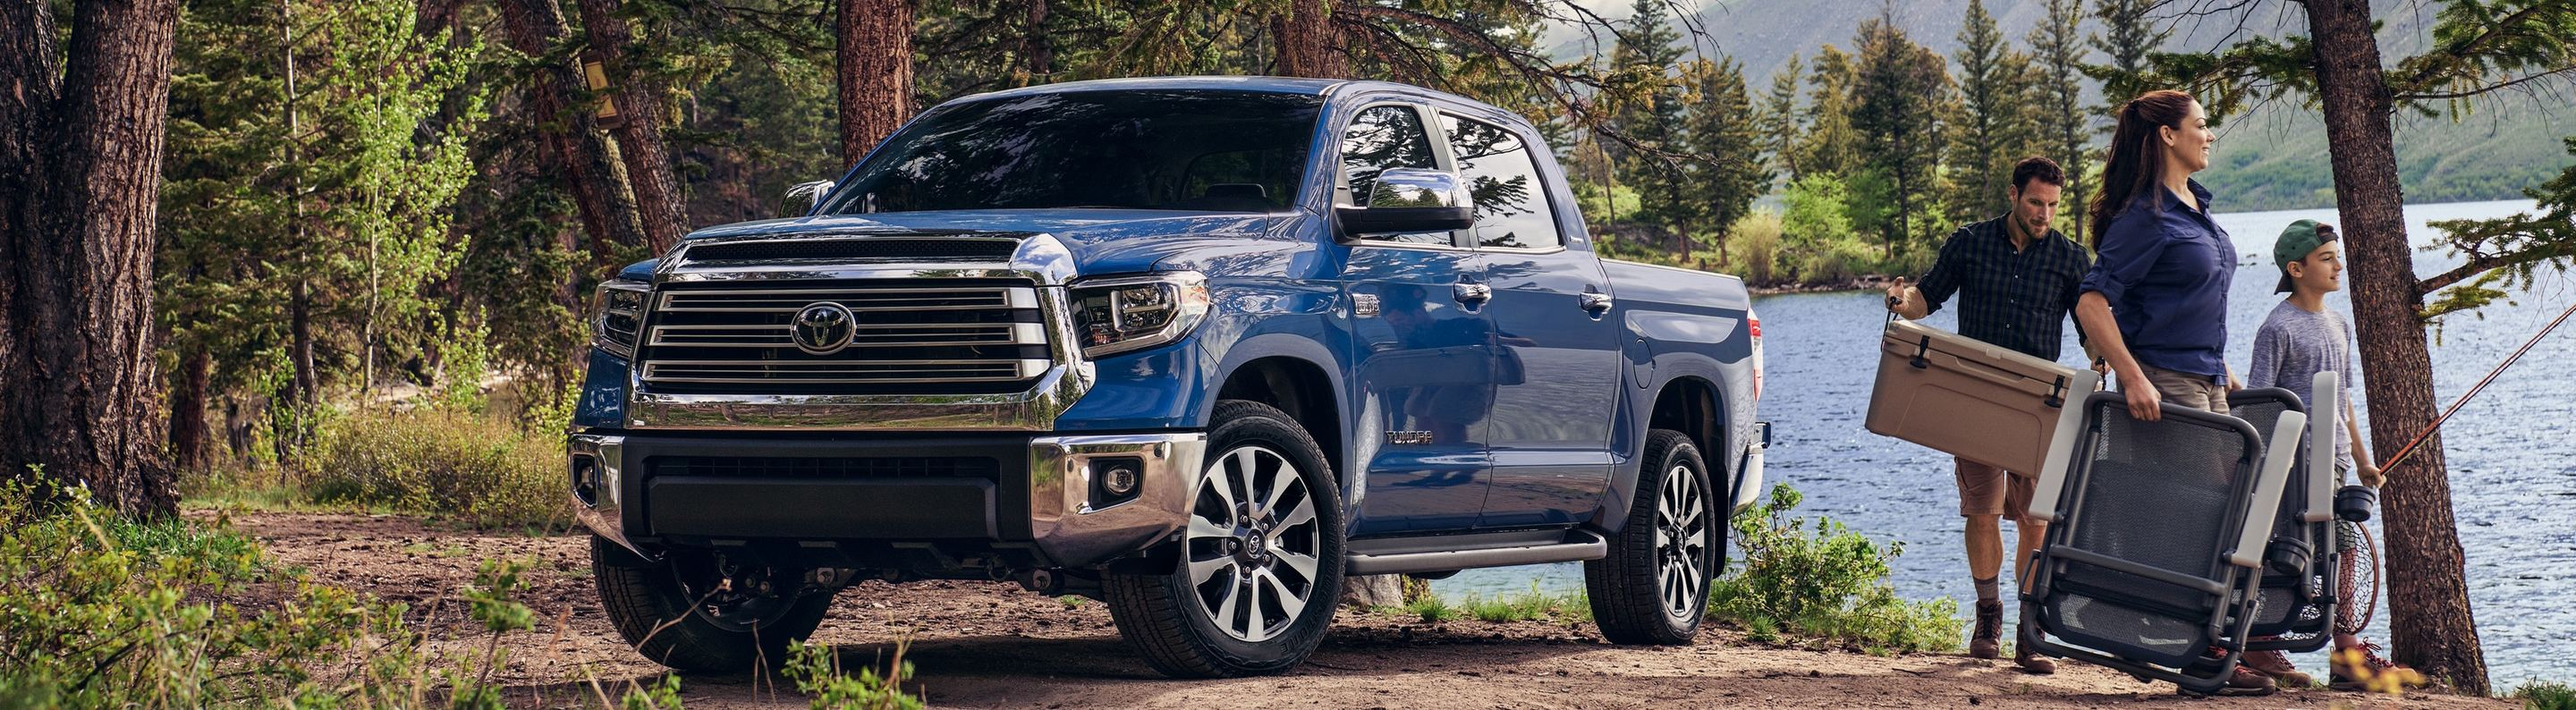 2020 Toyota Tundra for Sale near Milpitas, CA